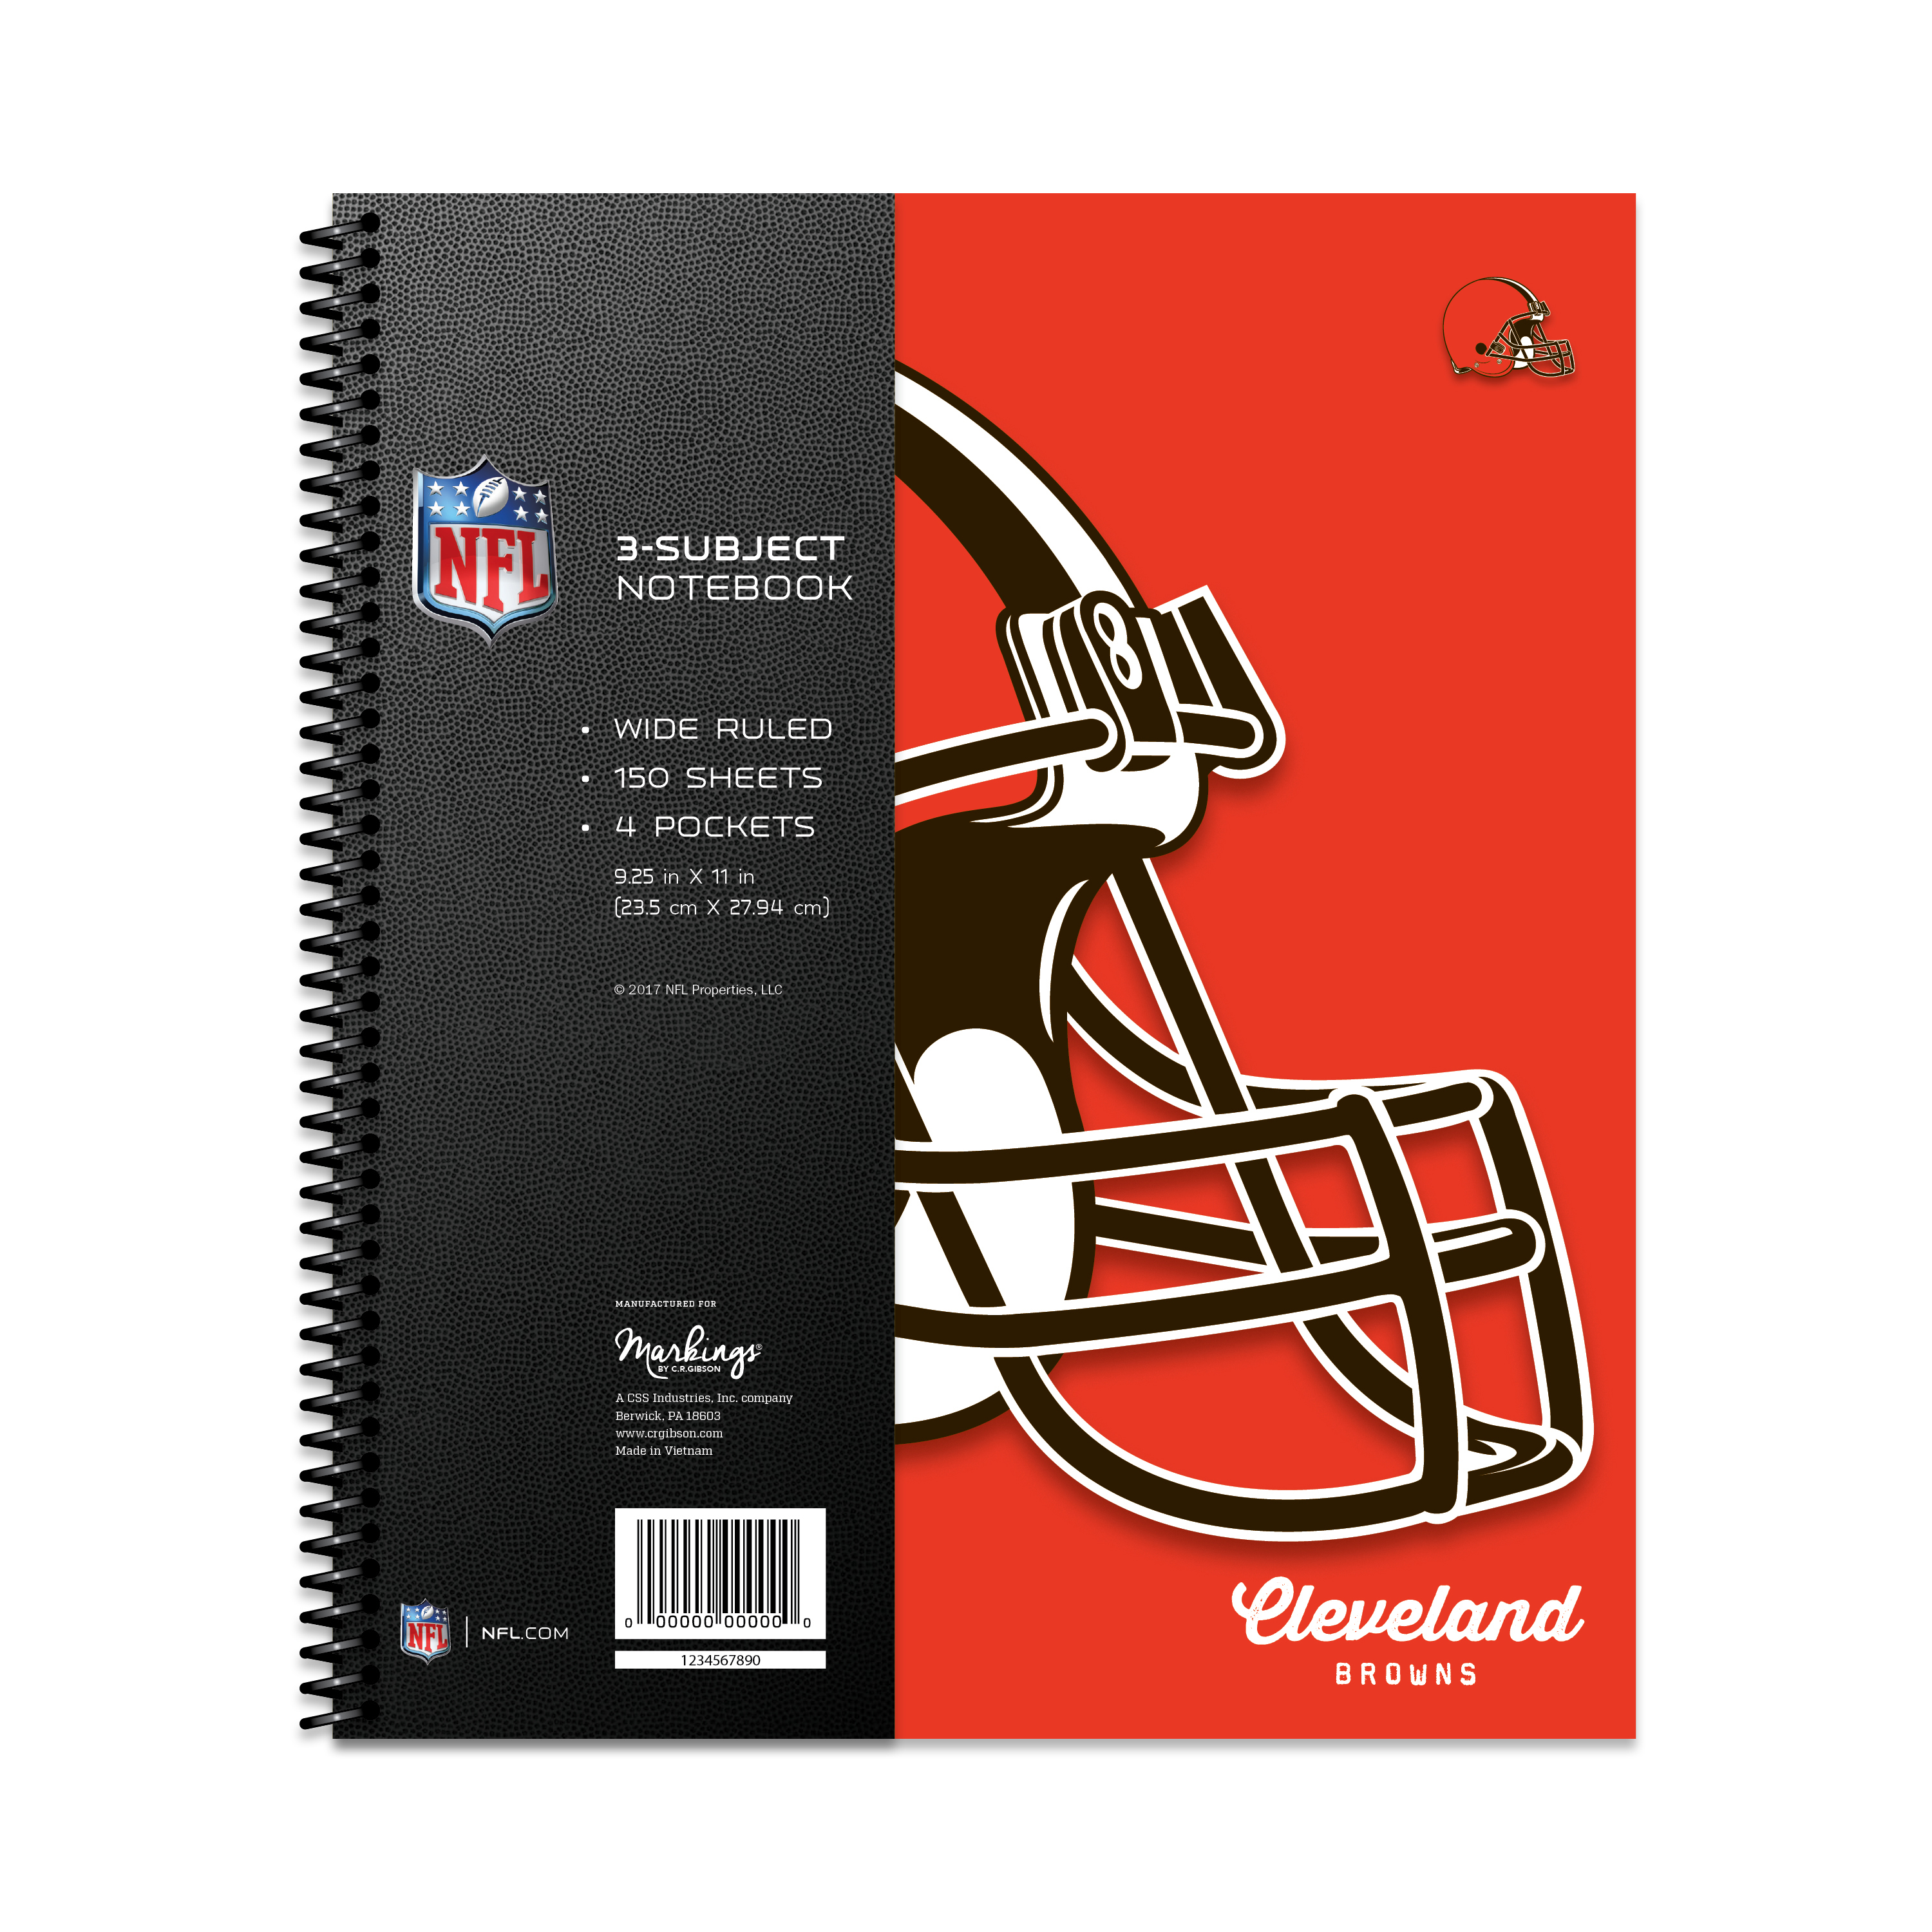 CLEVELAND BROWNS CLASSIC 3-SUBJECT NOTEBOOK